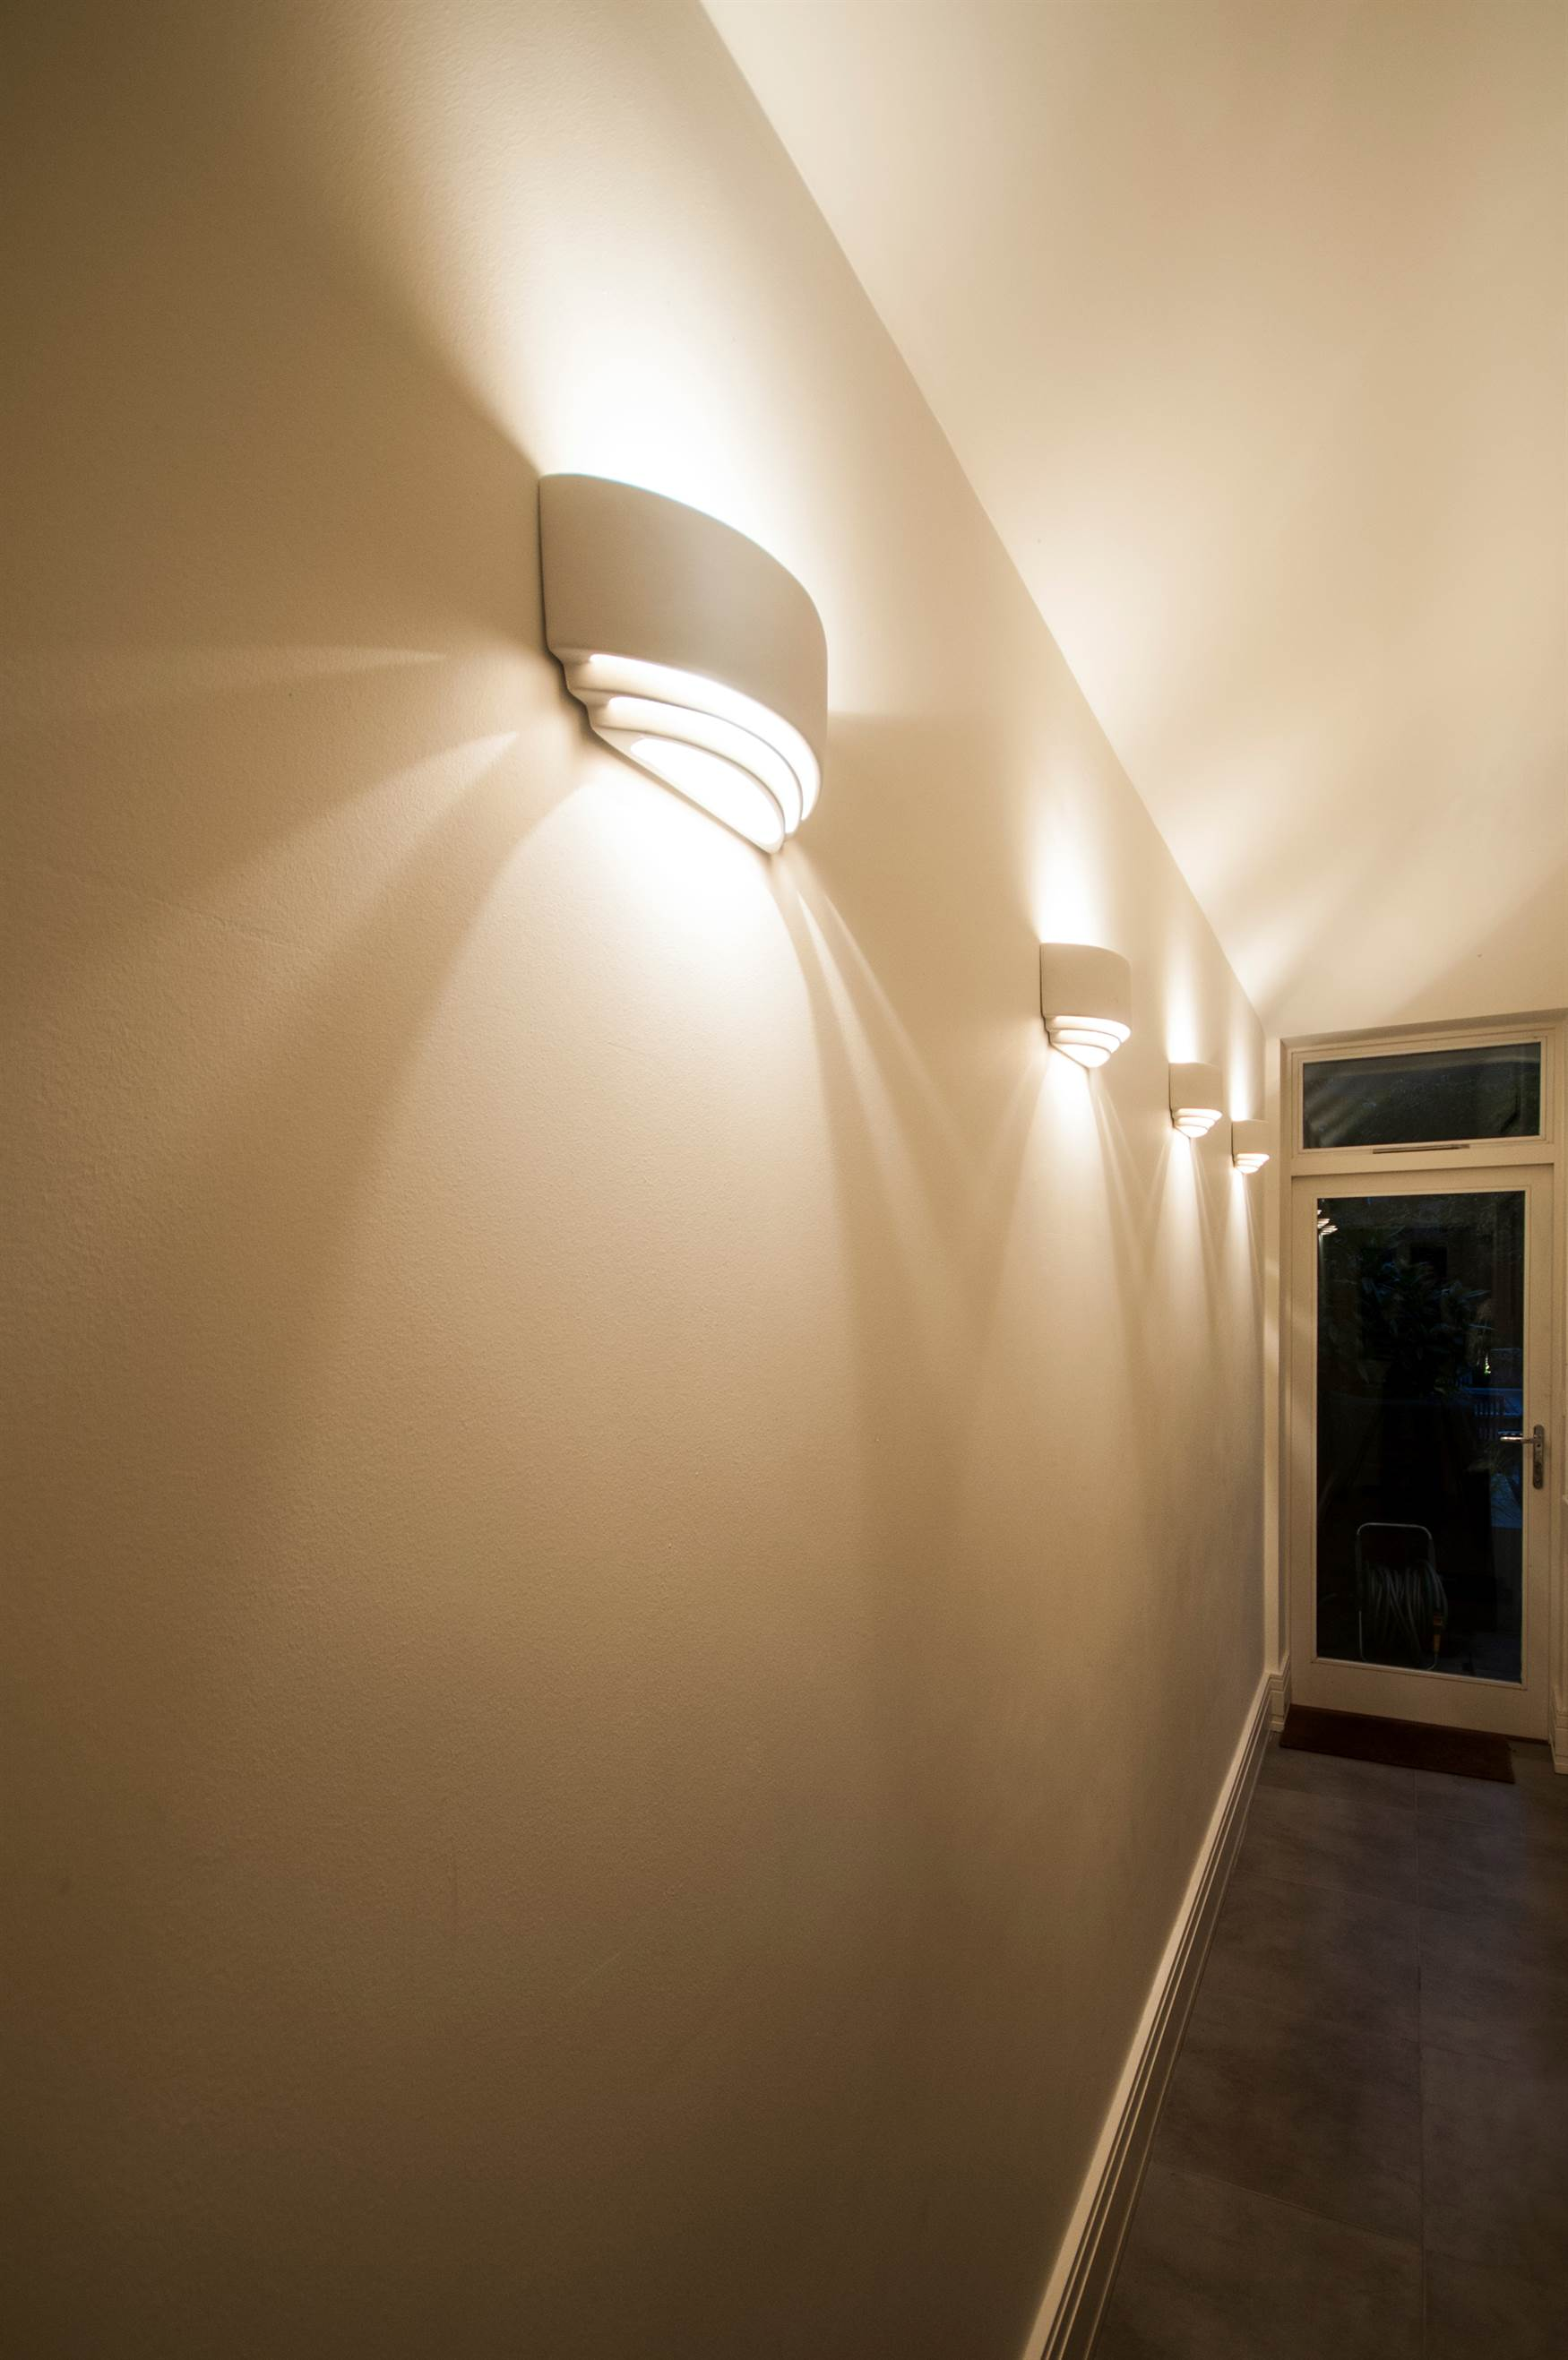 Enhance the illumination of your house interiors with Mr light wall ...